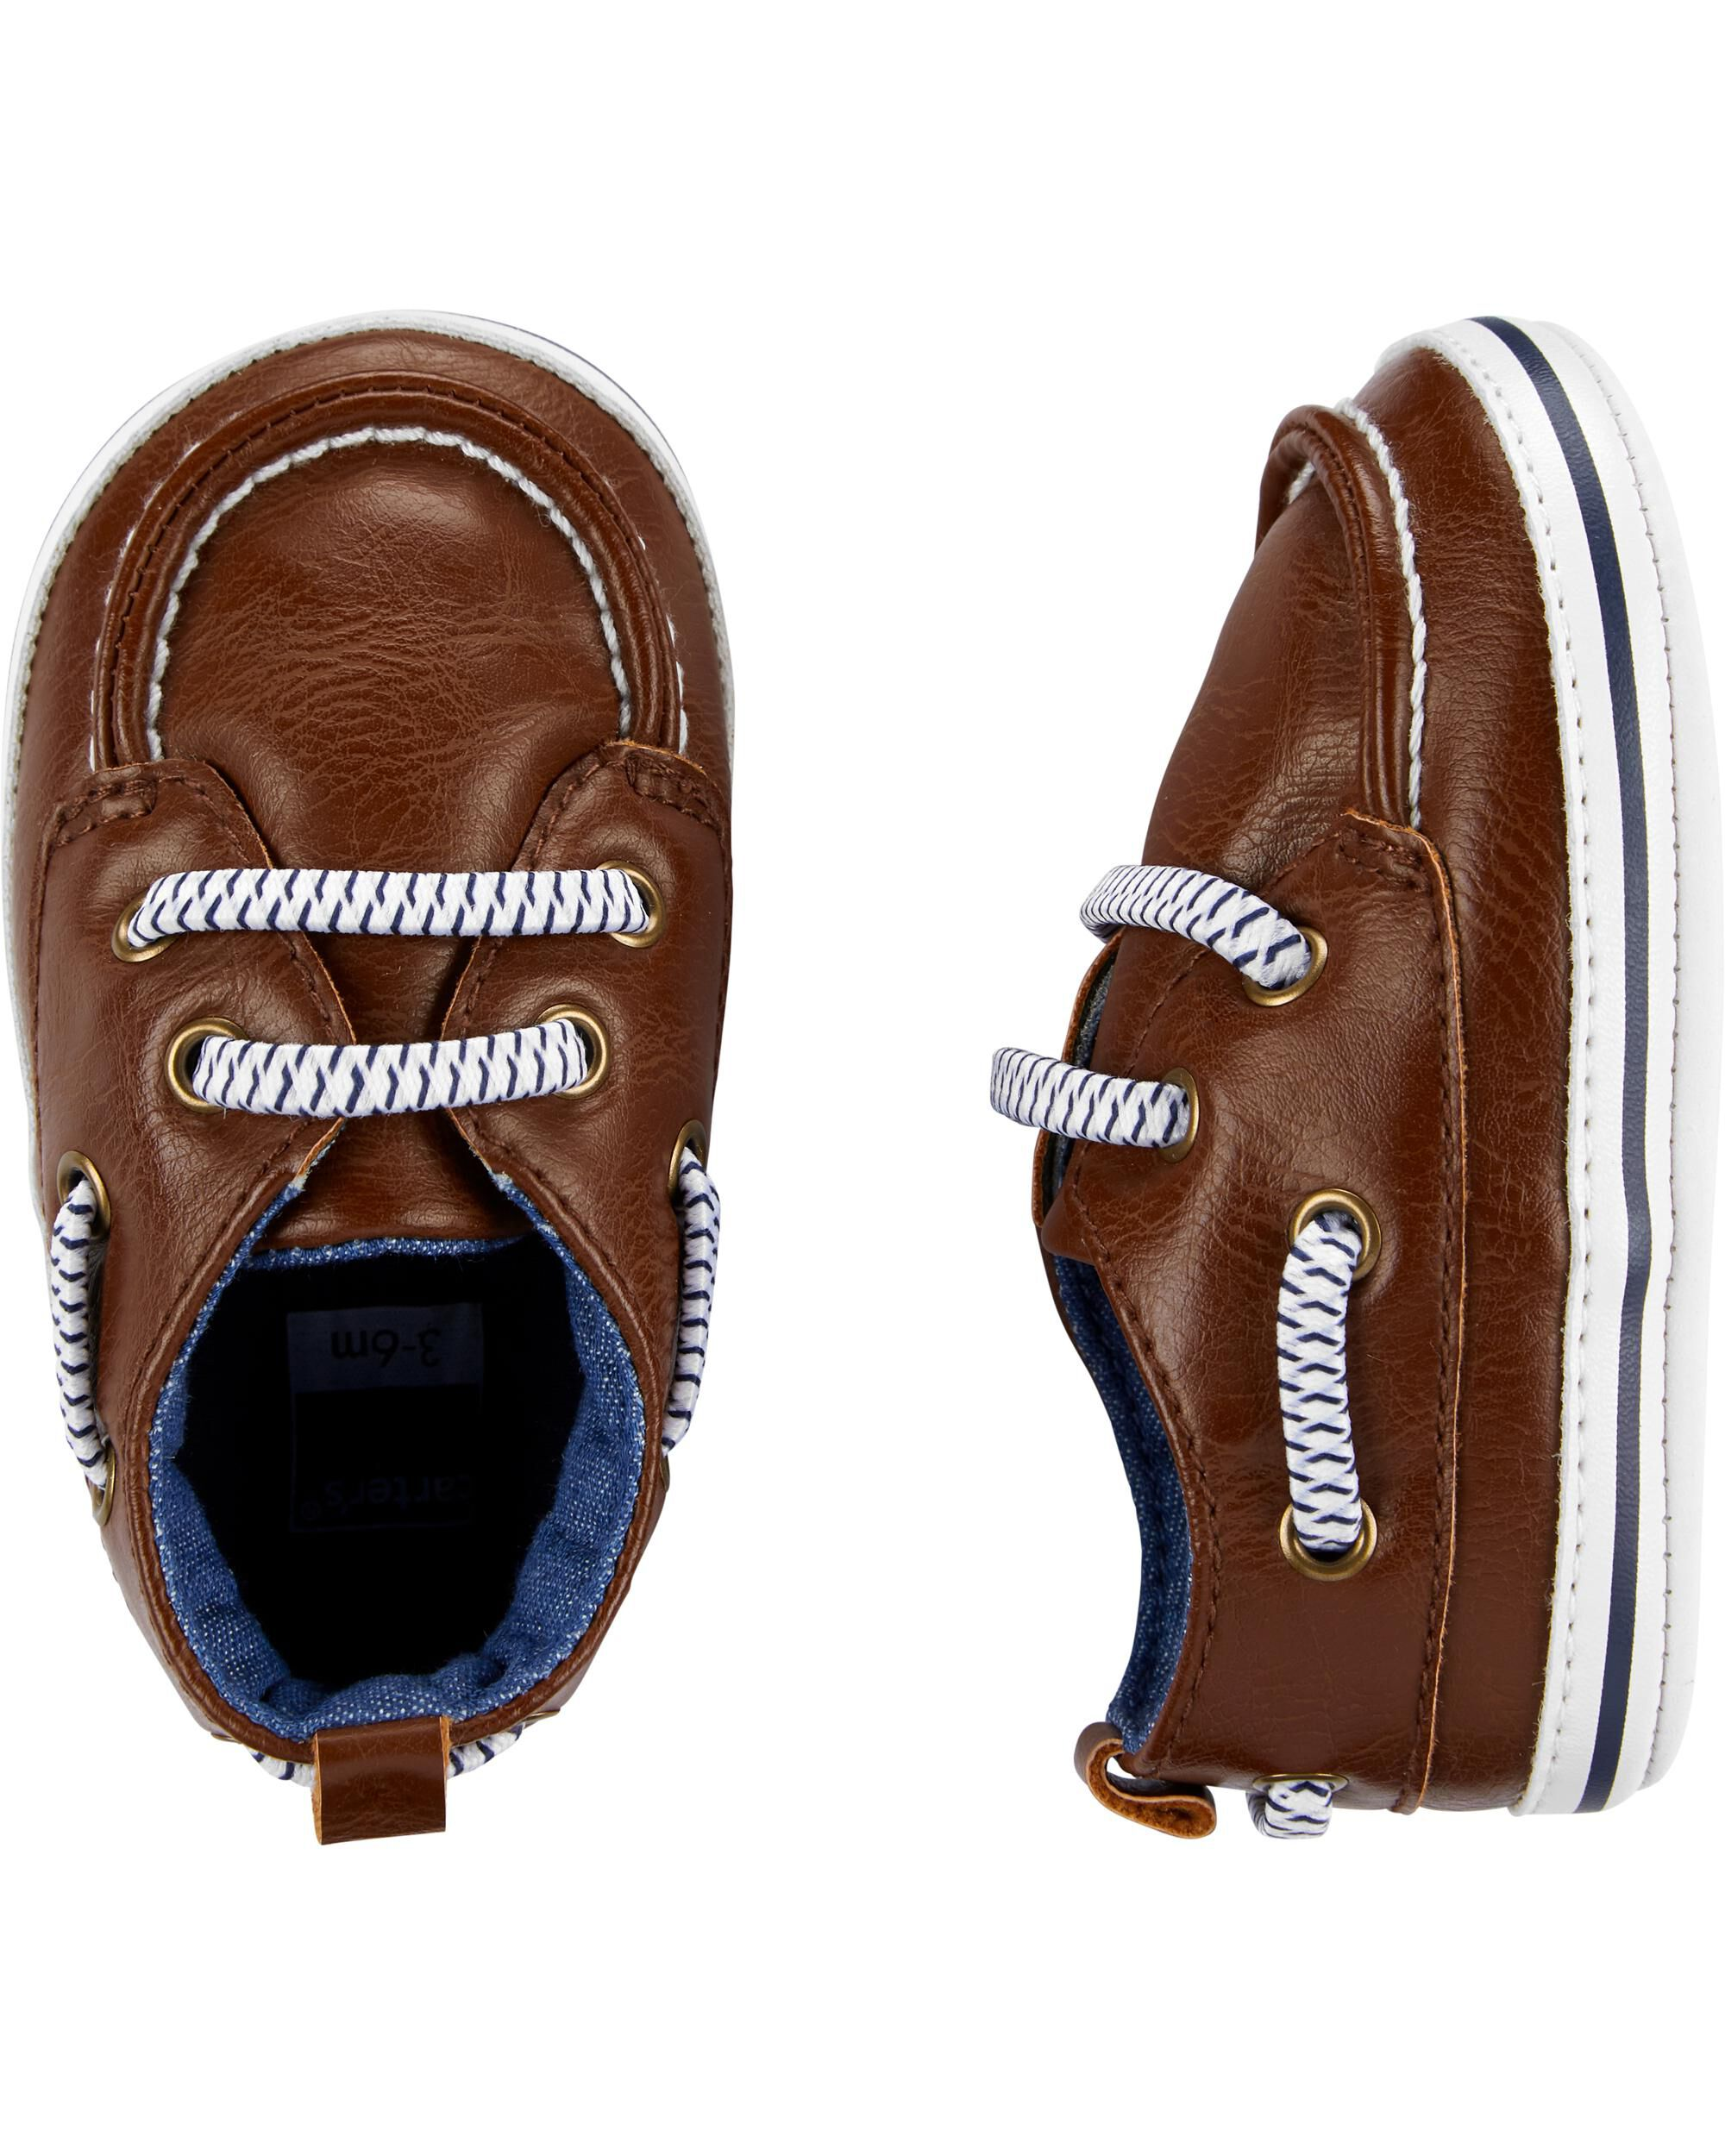 Carter's Boat Shoes Baby Shoes